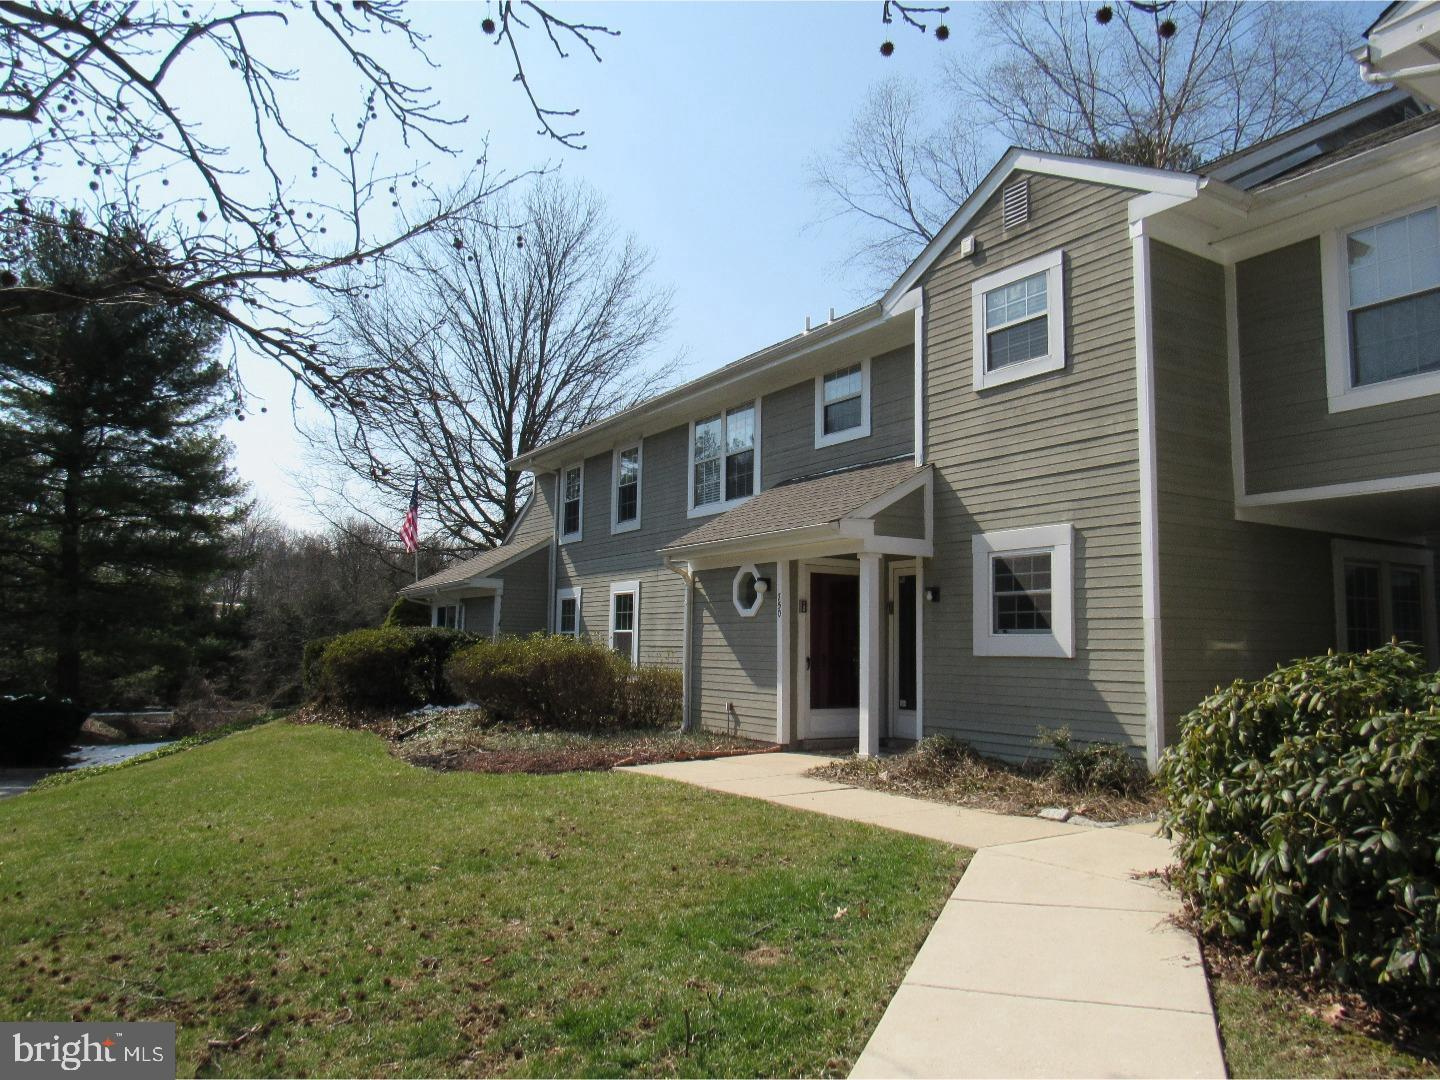 750 Scotch Way West Chester , PA 19382